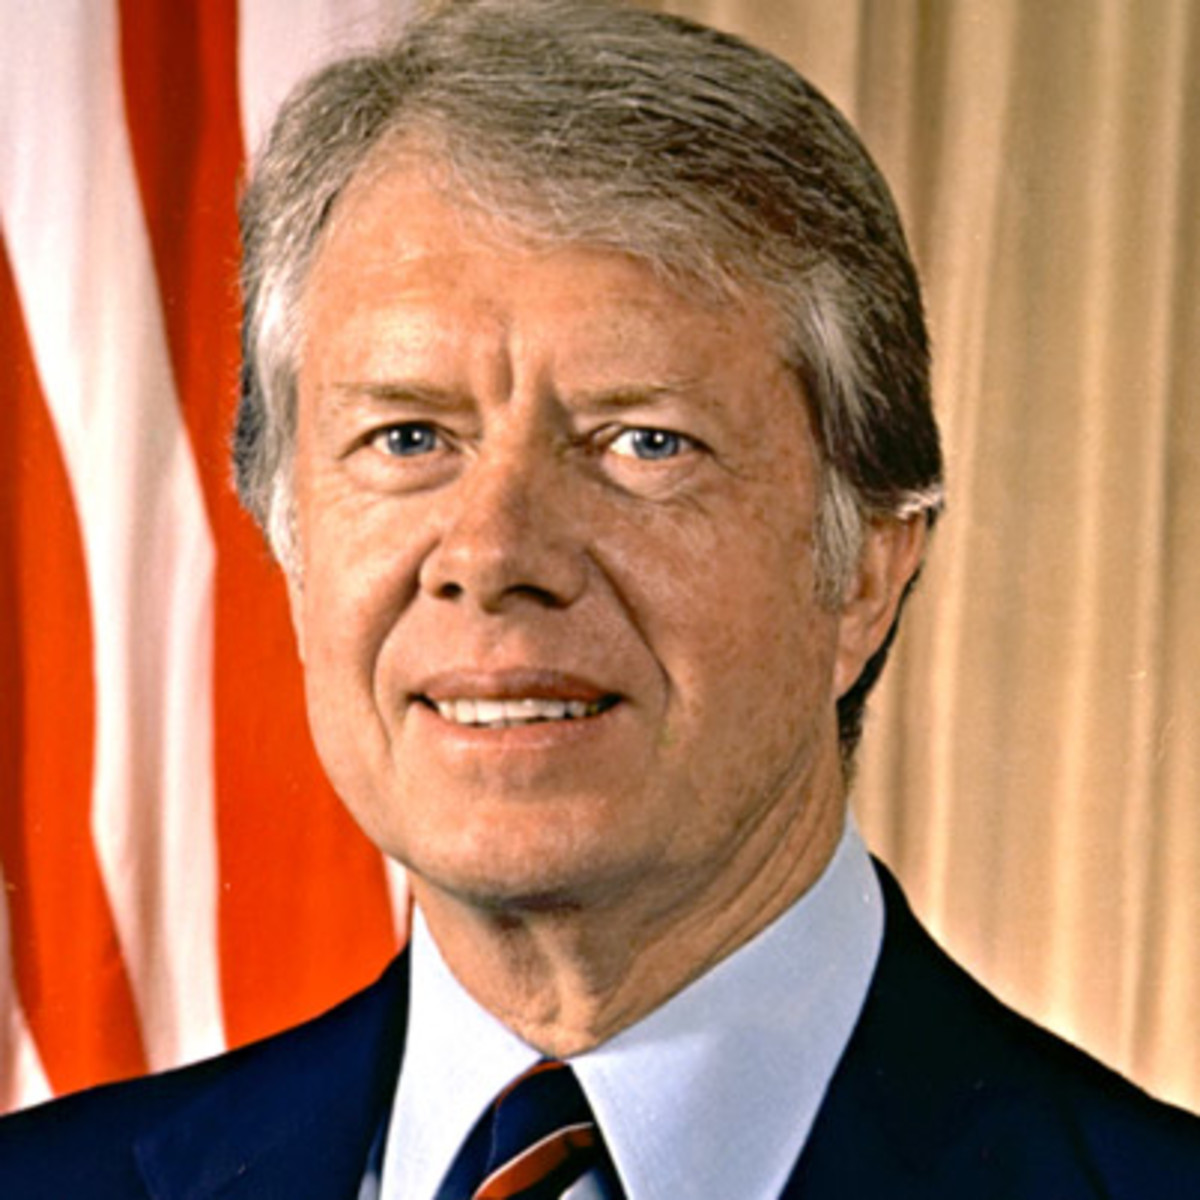 a biography of the president of peace jimmy carter Biography jimmy carter was the 39th president of the united states, author of numerous books, teacher at emory university, founder of the carter center, and the recipient of the nobel peace prize.